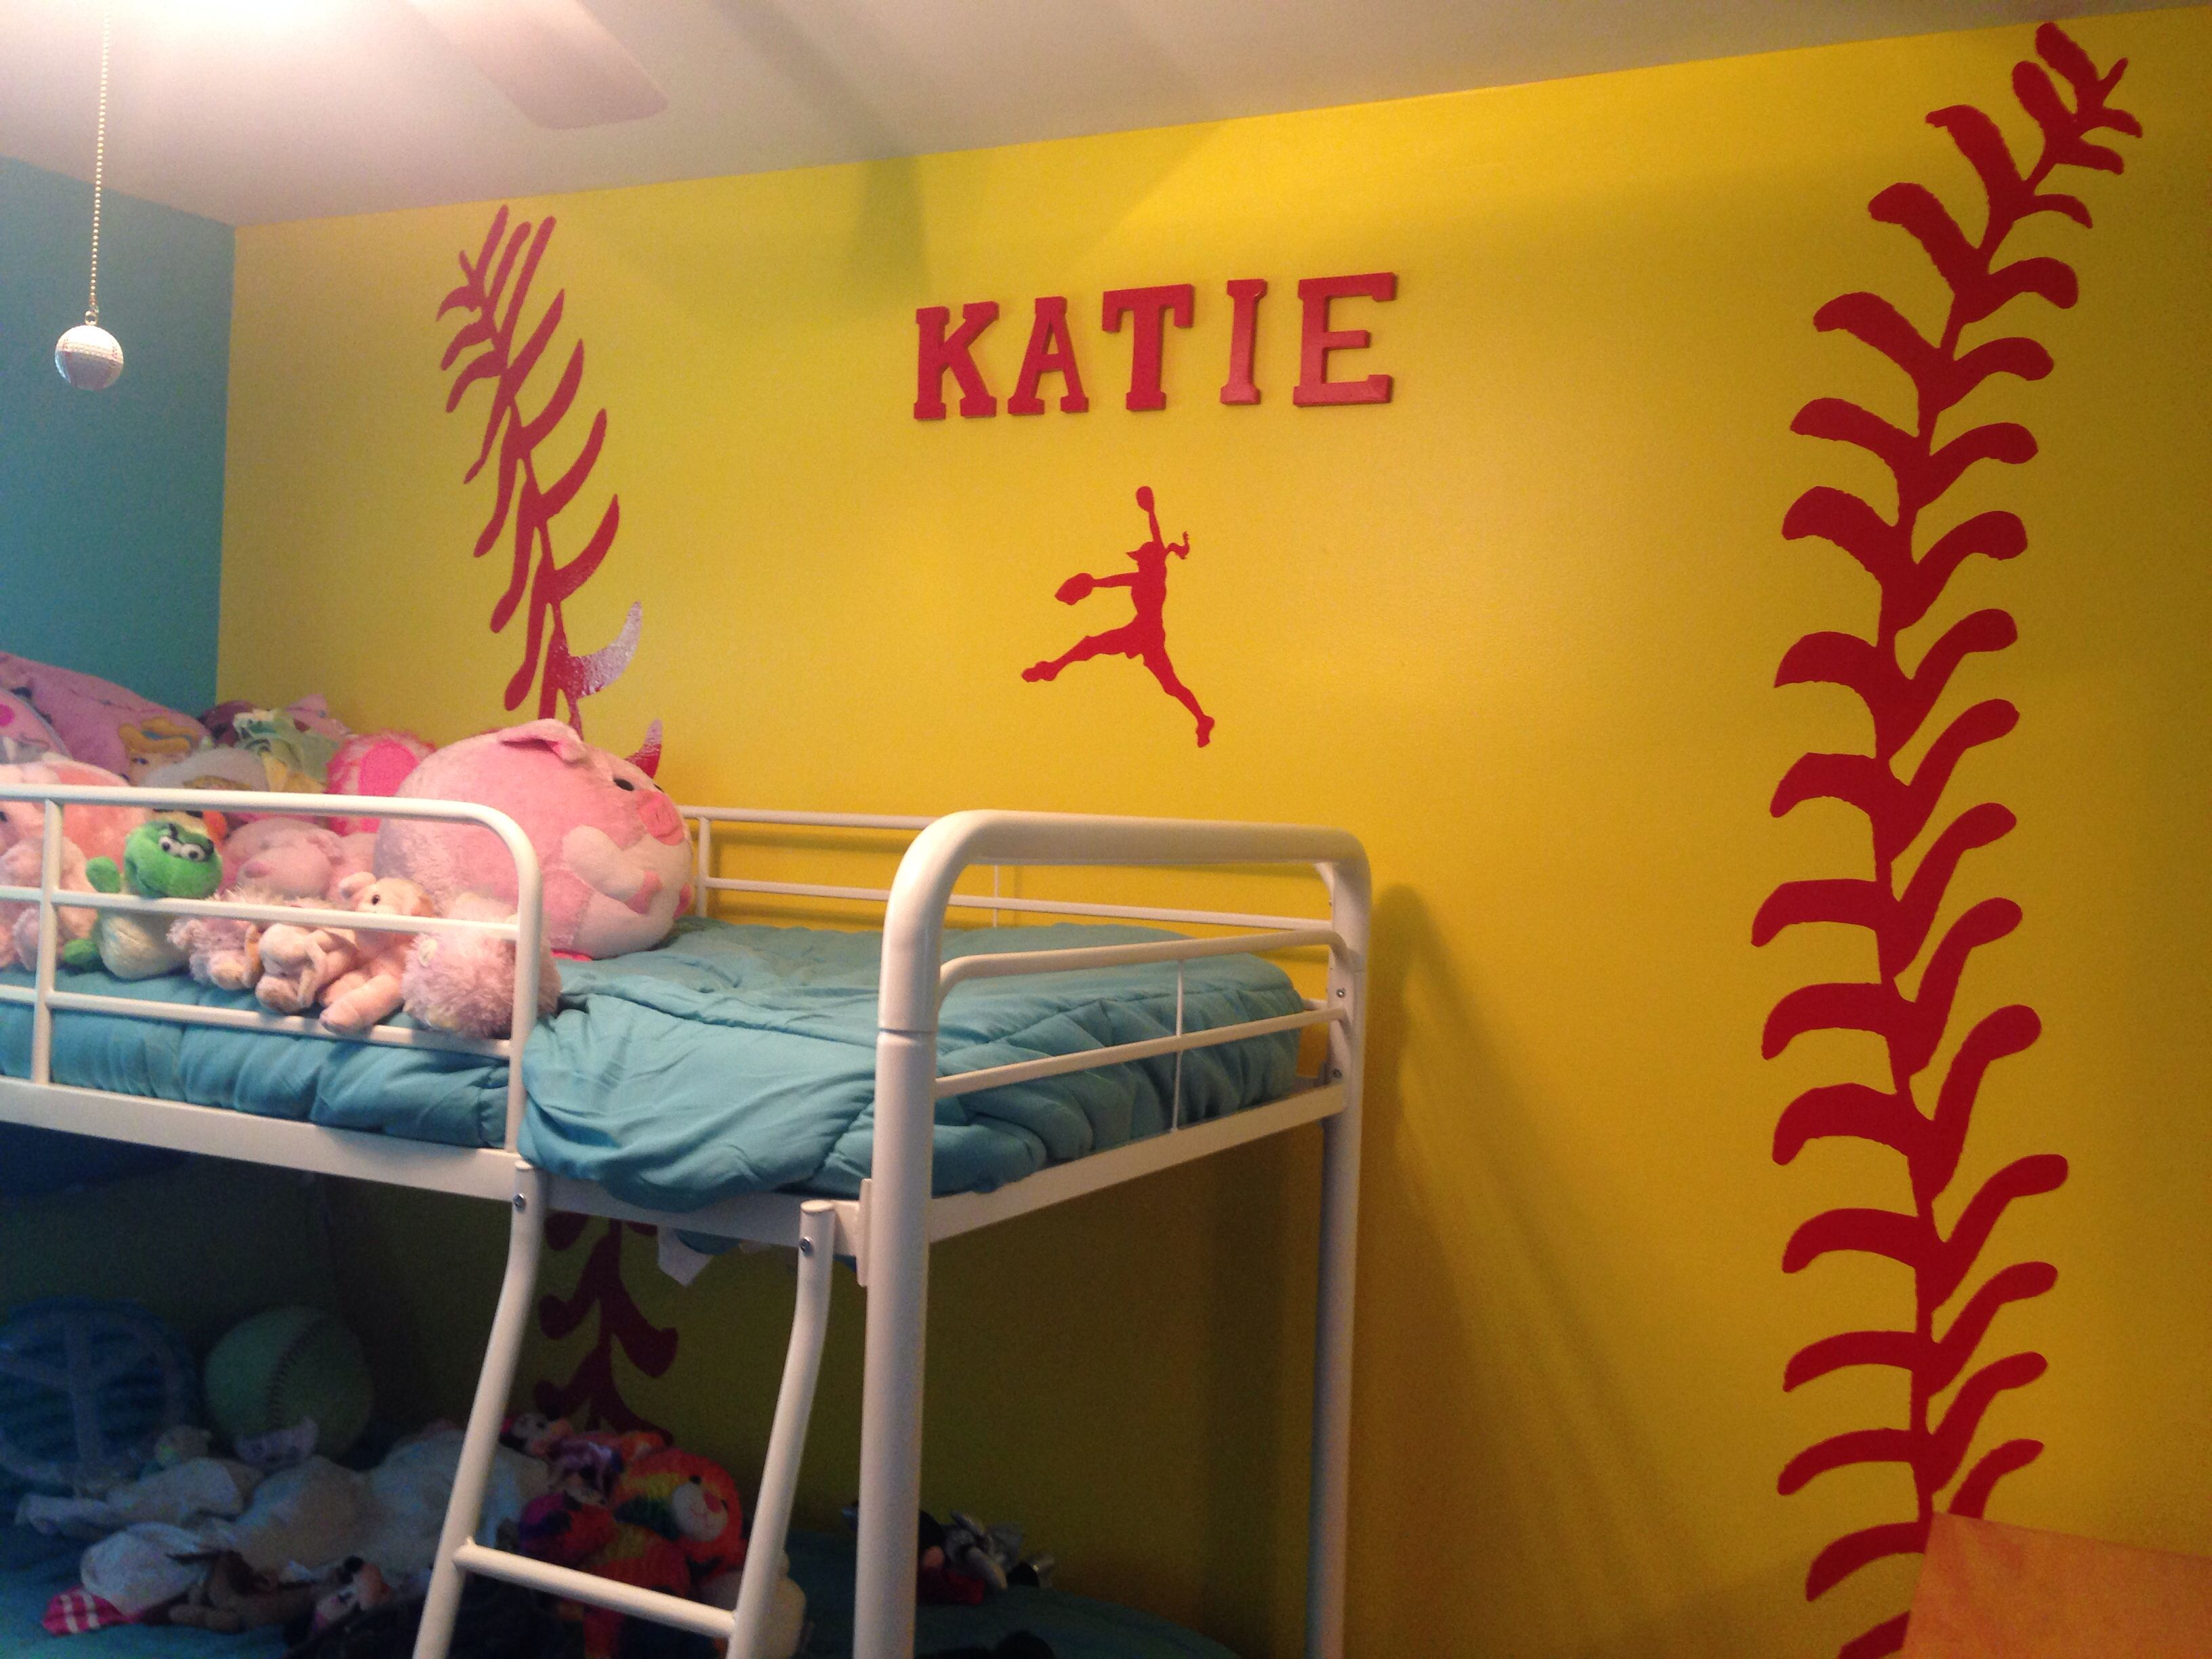 Softball Themed Bedroom Softball Bedroom Softball Room Decor Softball Room Softball decorations for bedroom